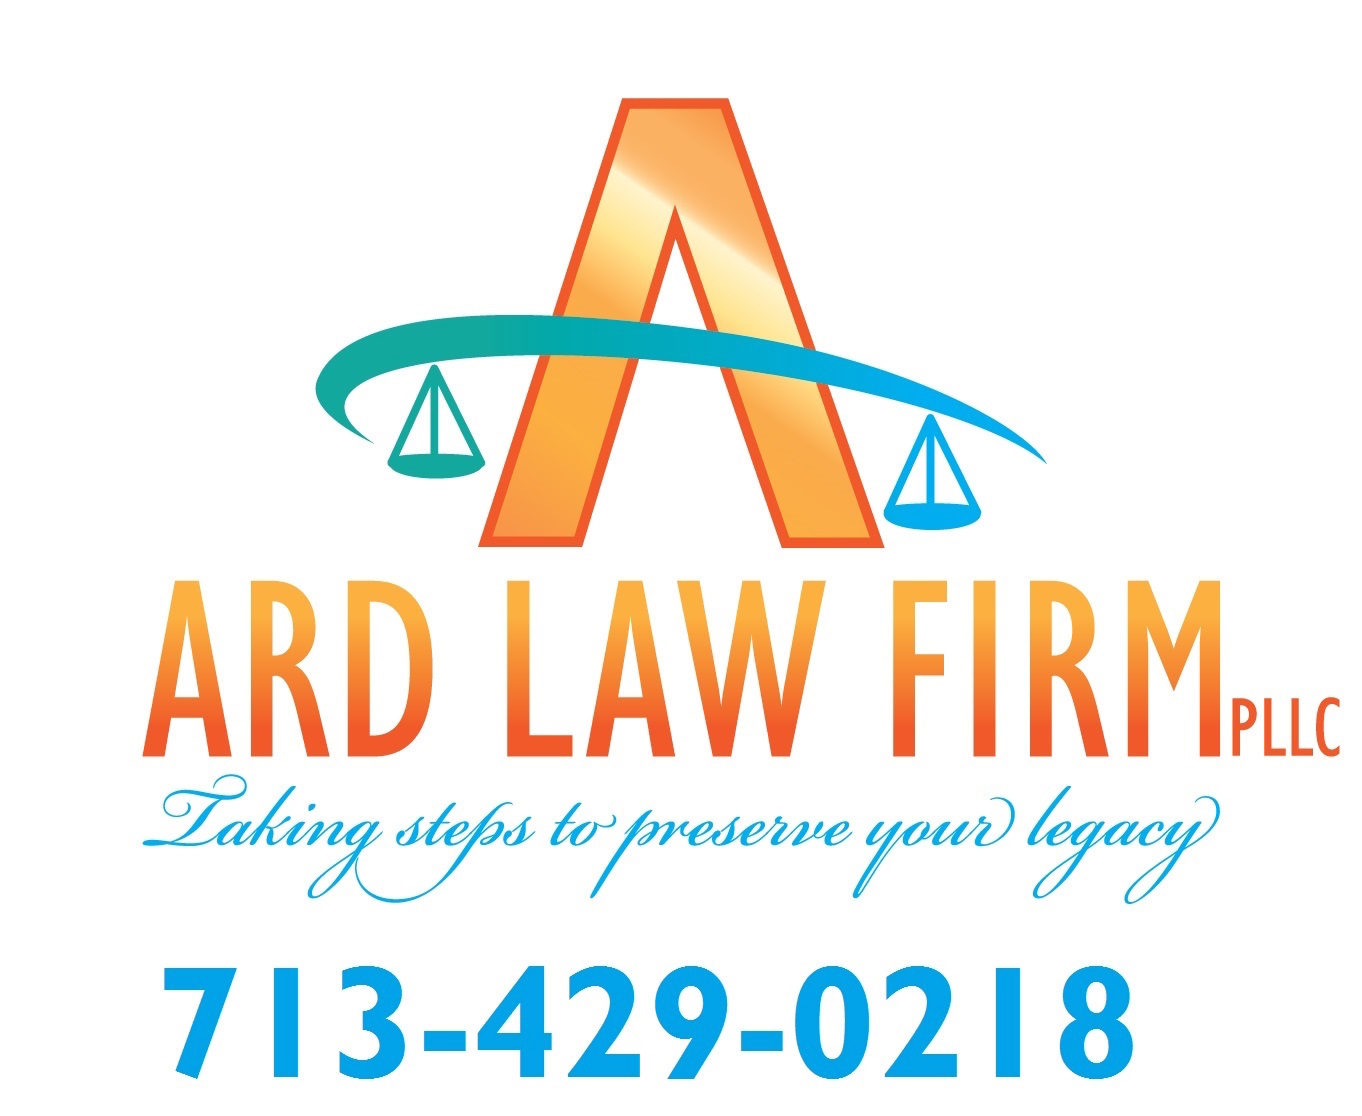 Ard Law Firm